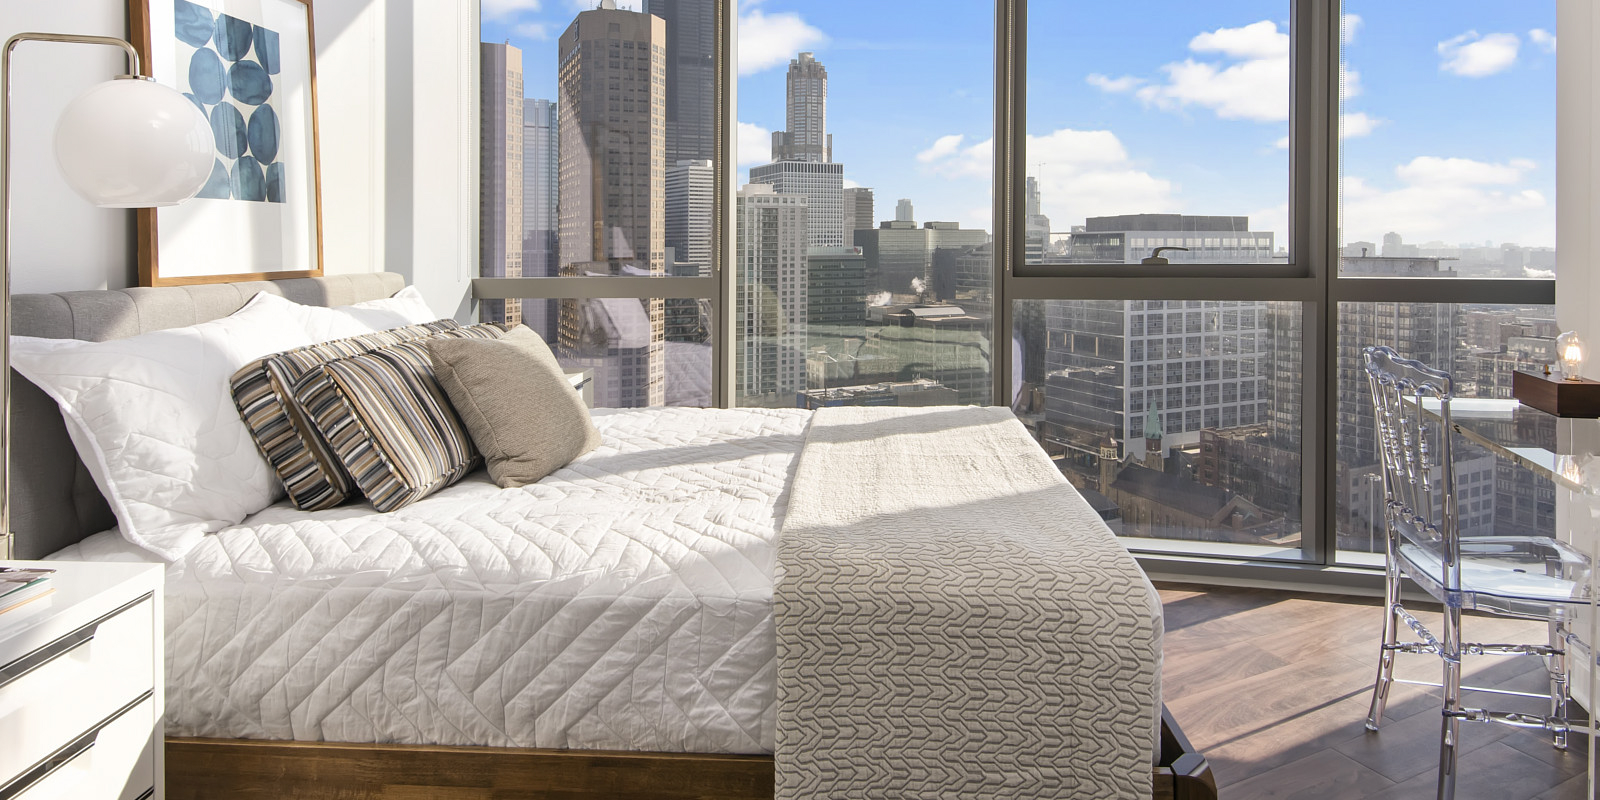 Luxury Apartments For Rent Near Looking For Luxury Apartments For Rent Near West Loop?